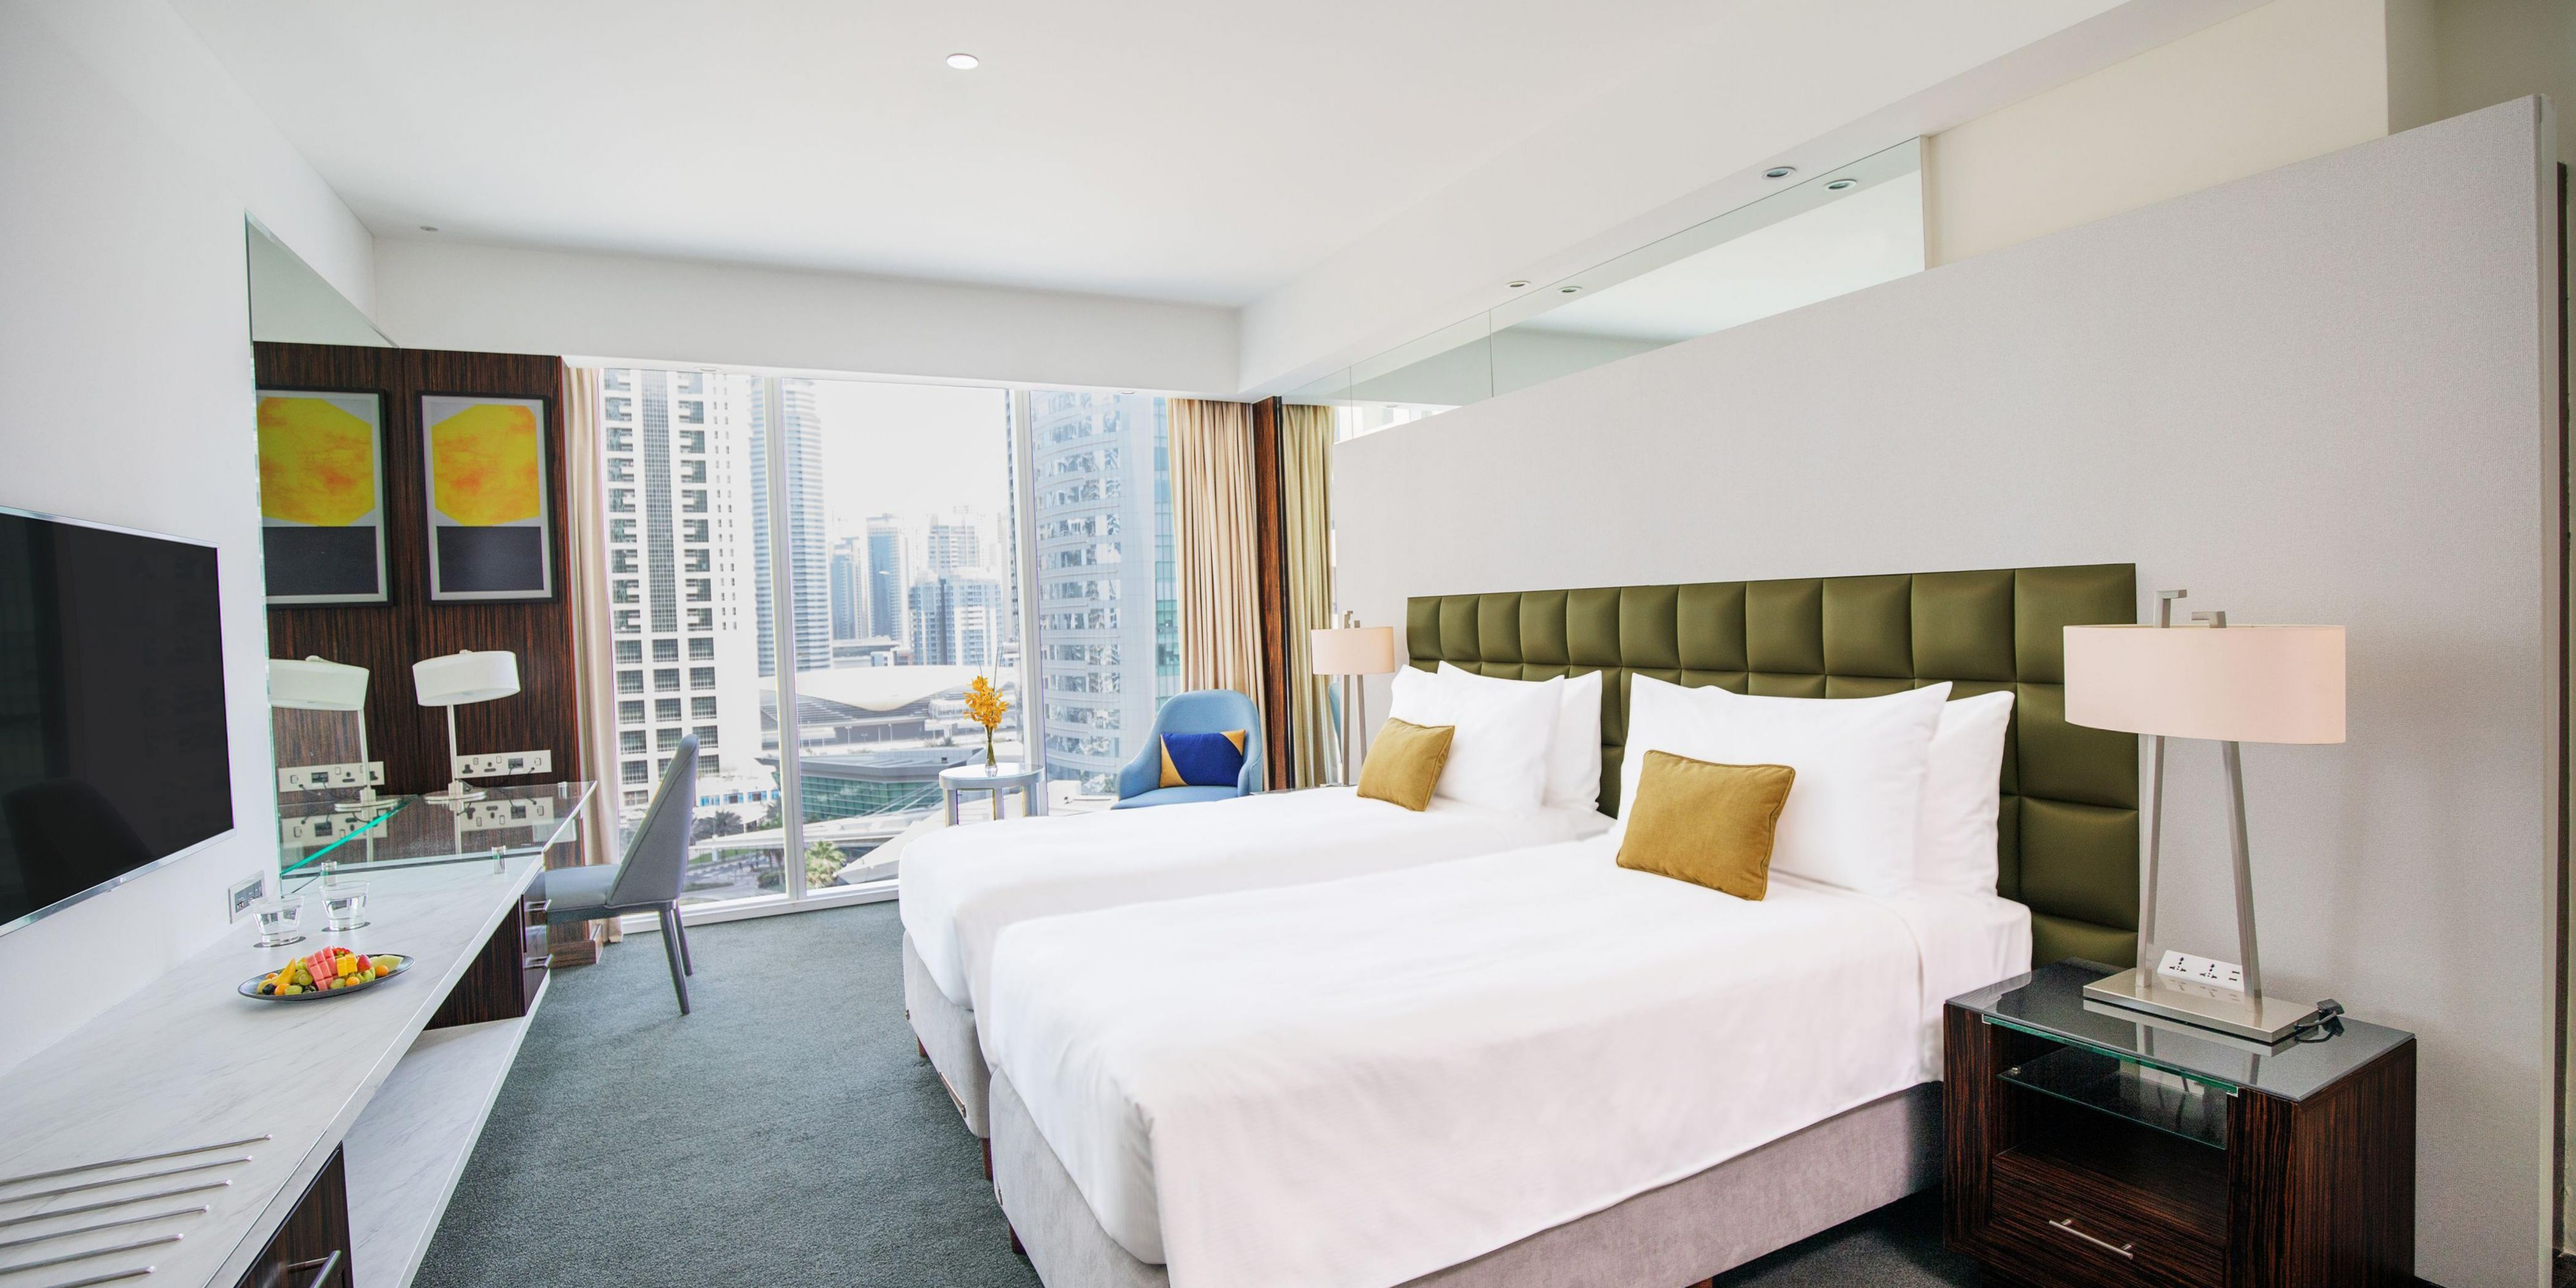 Our twin beds available in the spacious Deluxe room